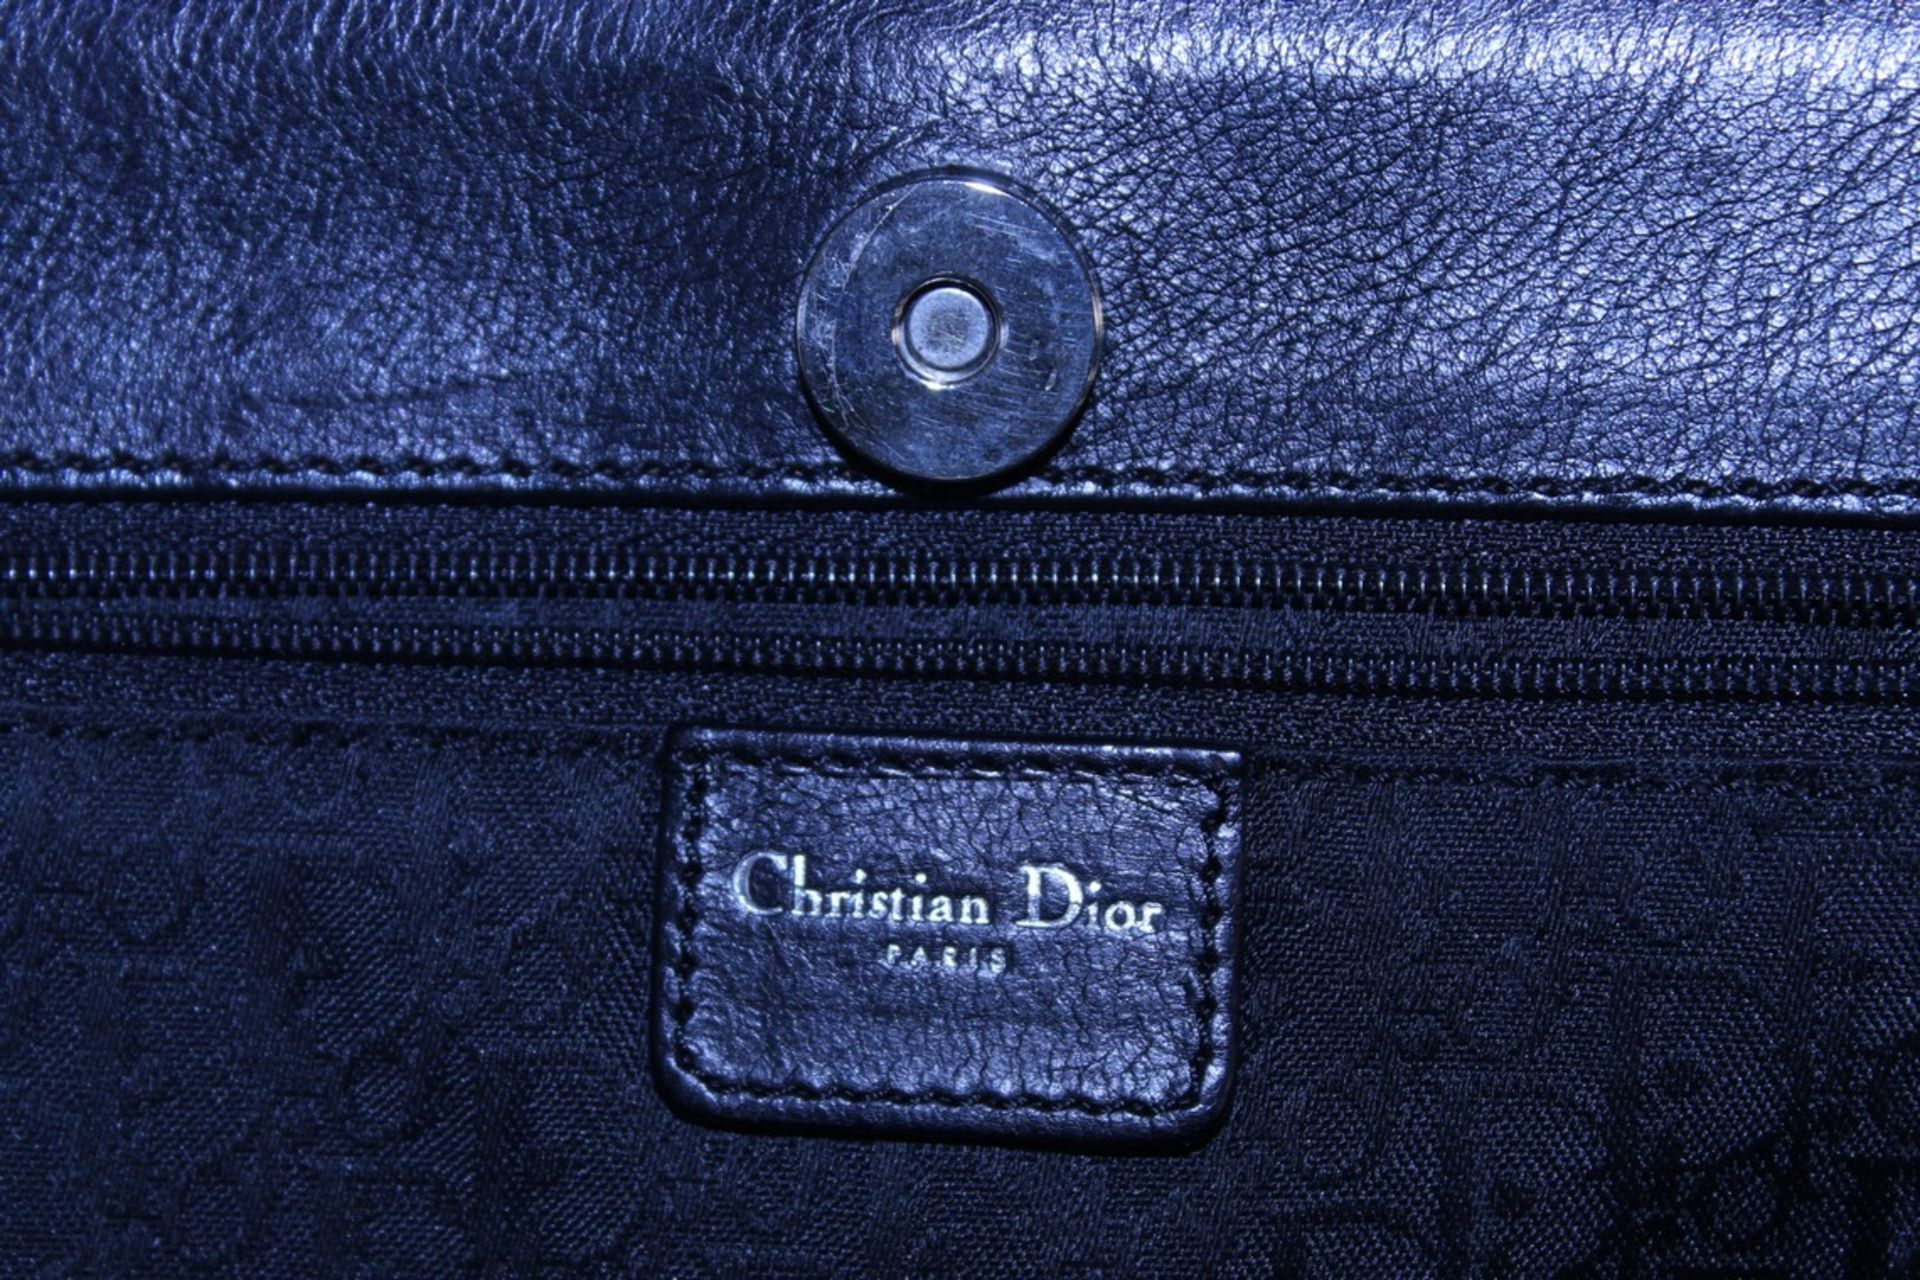 RRP £1300 Dior Interlocking D Belt Handbag In Black Calf Leather With Black Leather Handles. ( - Image 5 of 6